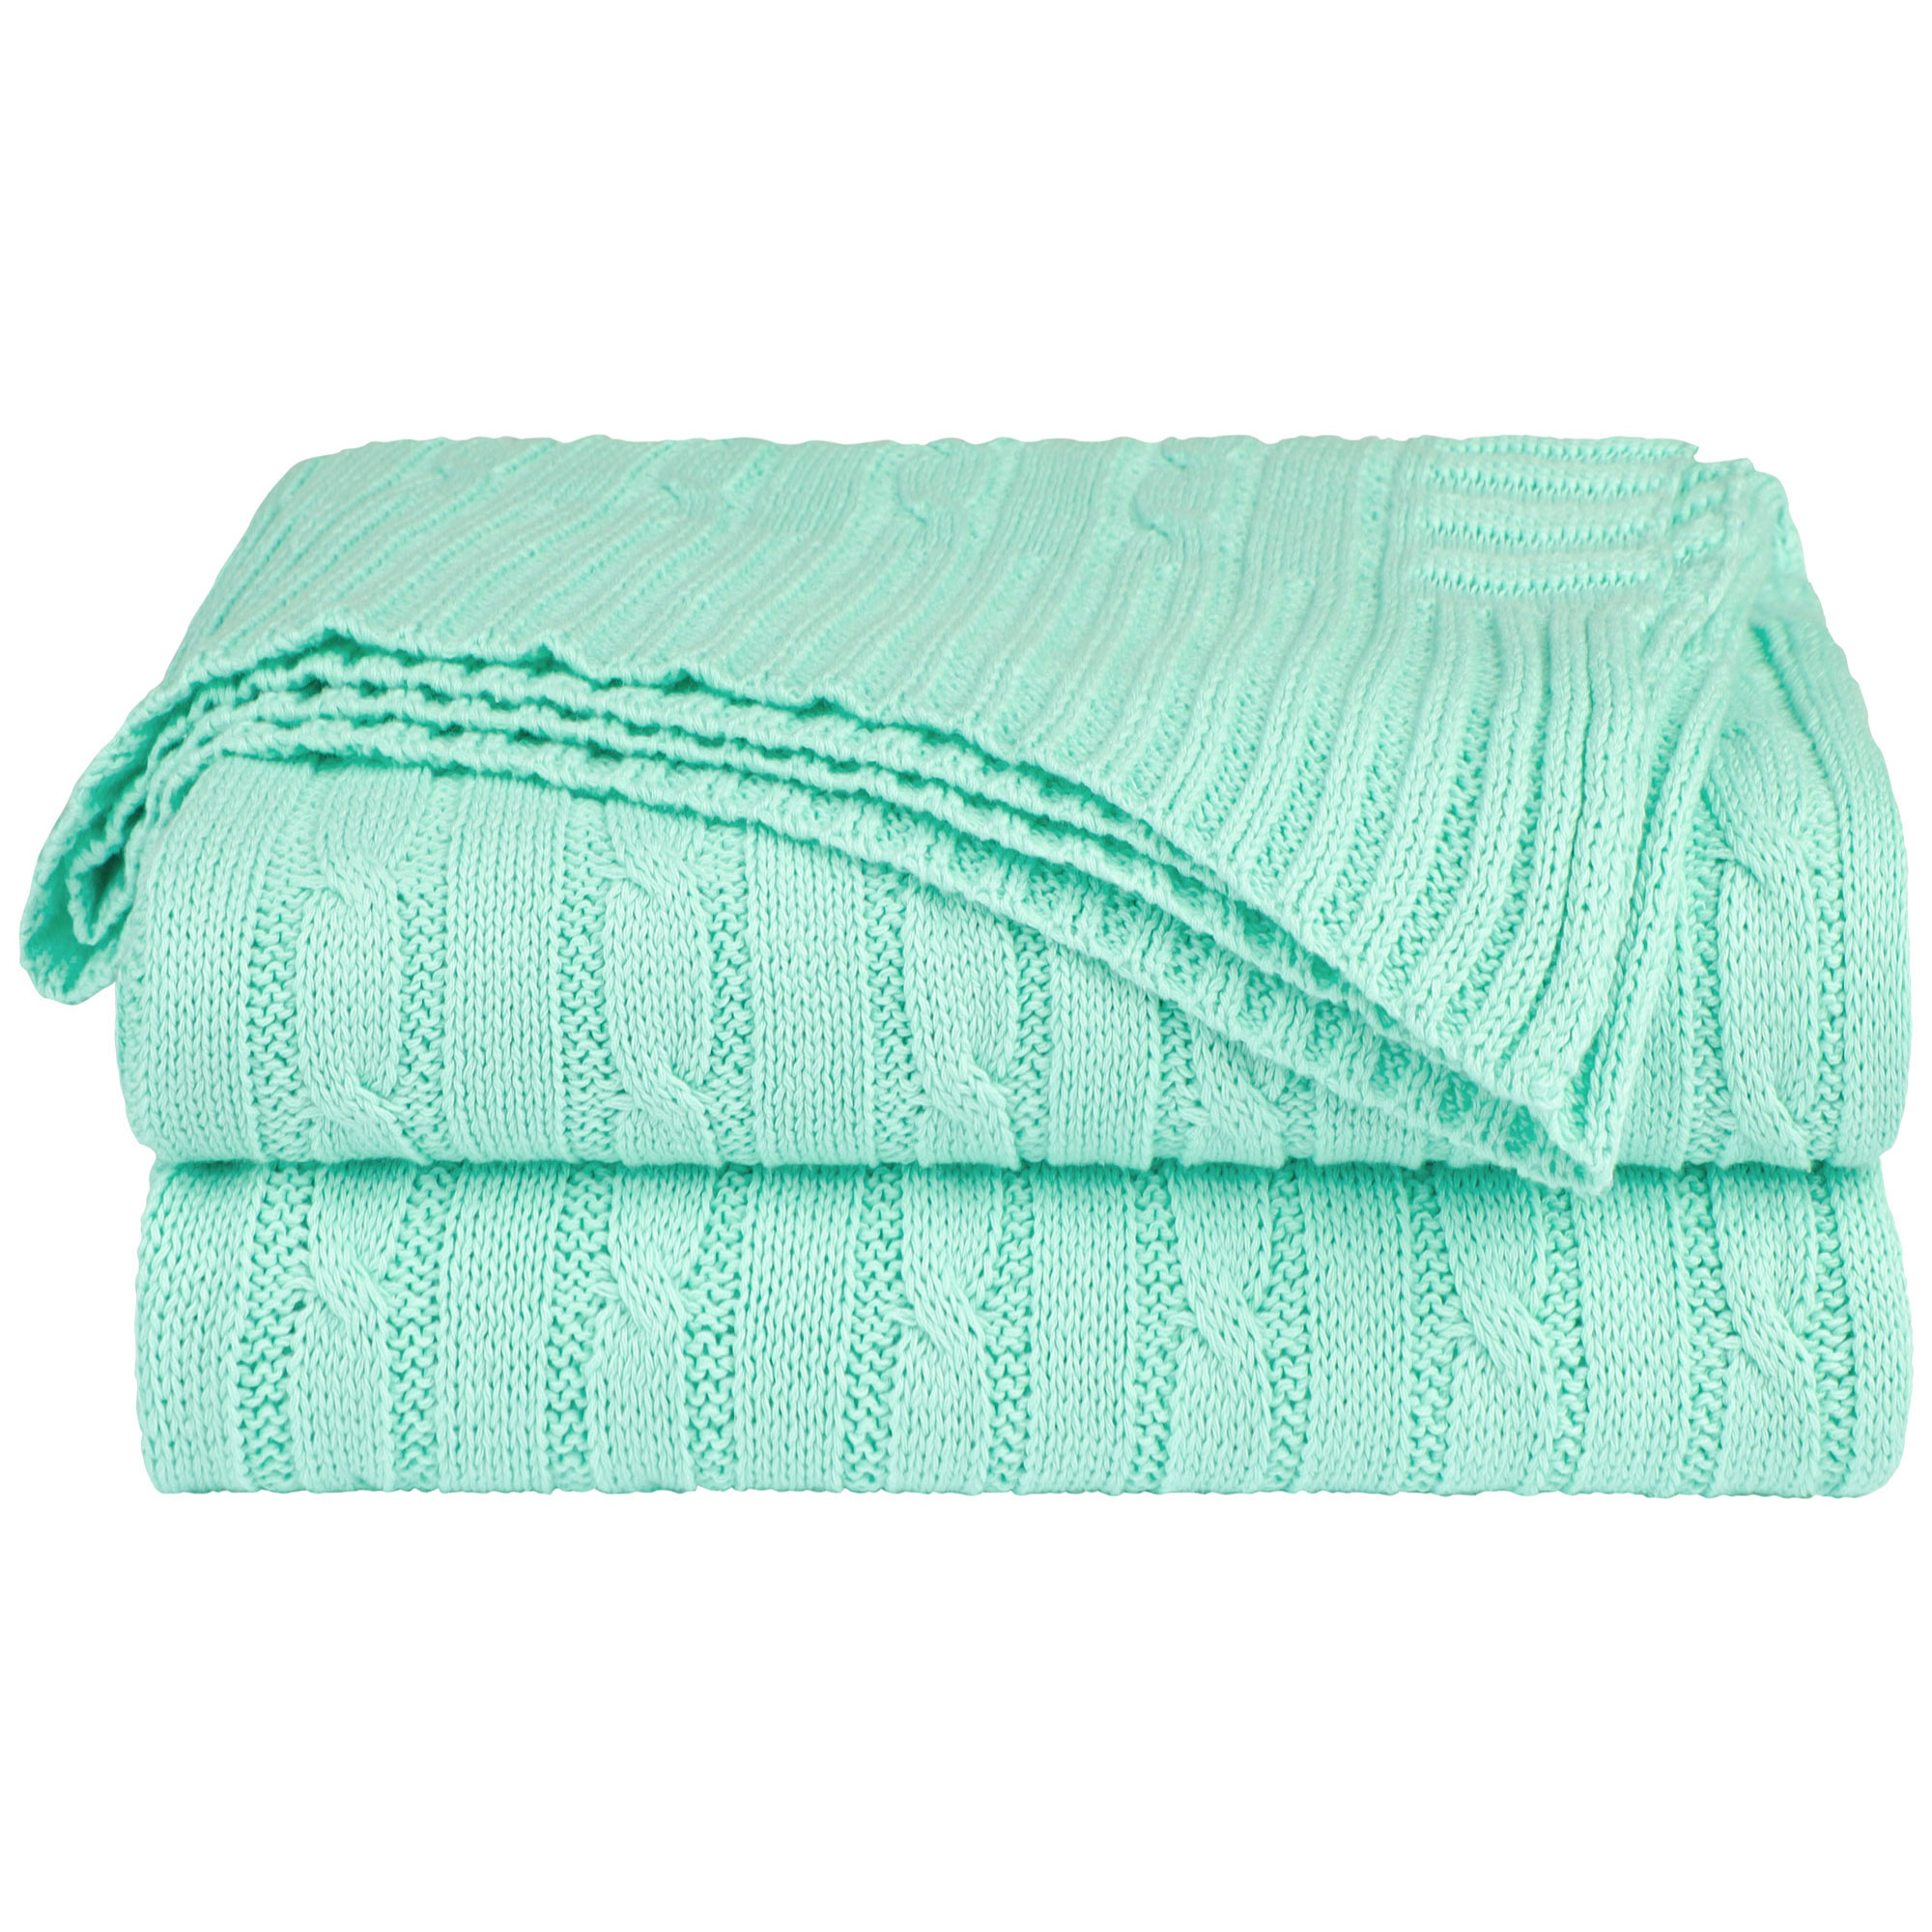 Home Decor 100% Cotton Soft Cable Knit Throw Blanket Pale Green